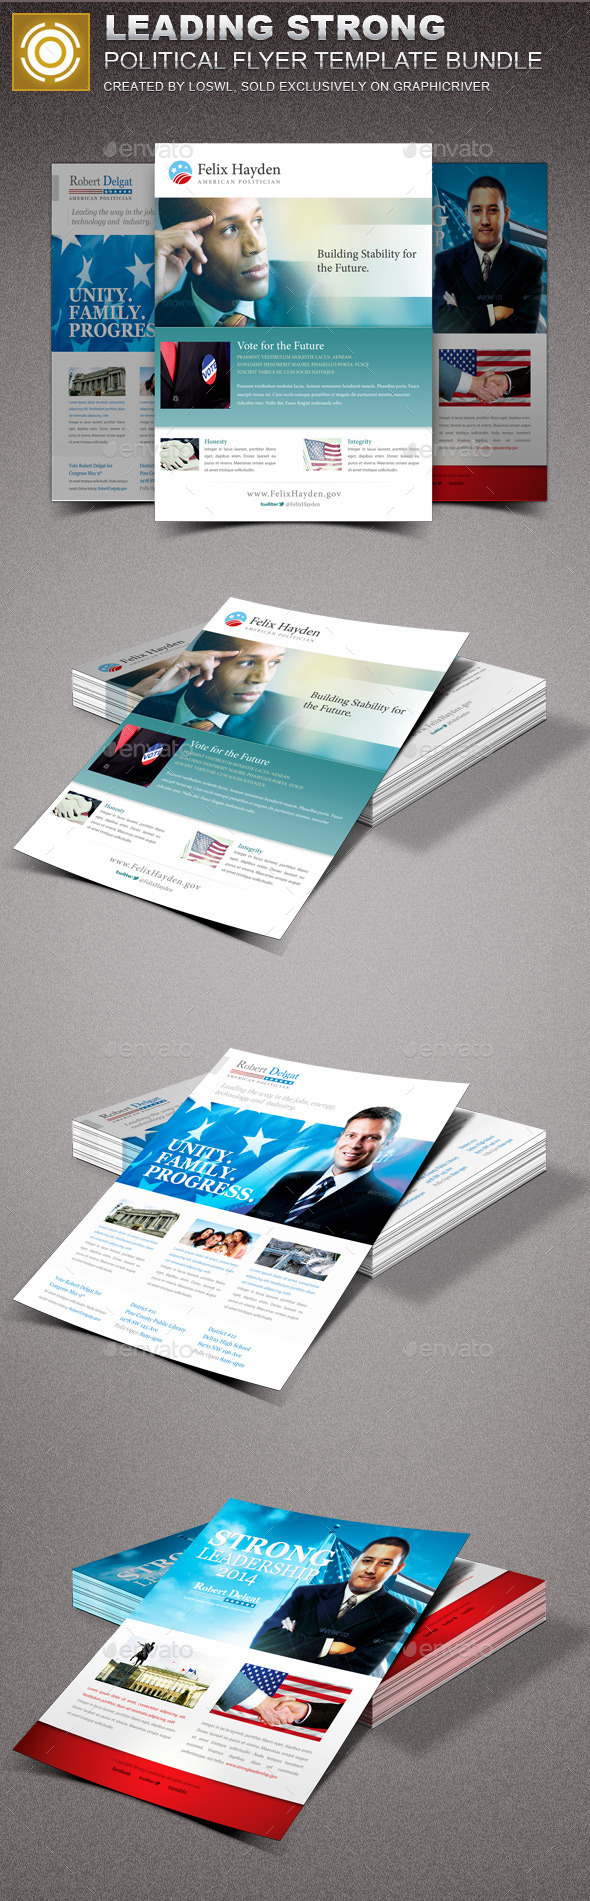 Leading Strong Political Flyer Template Bundle - Events Flyers